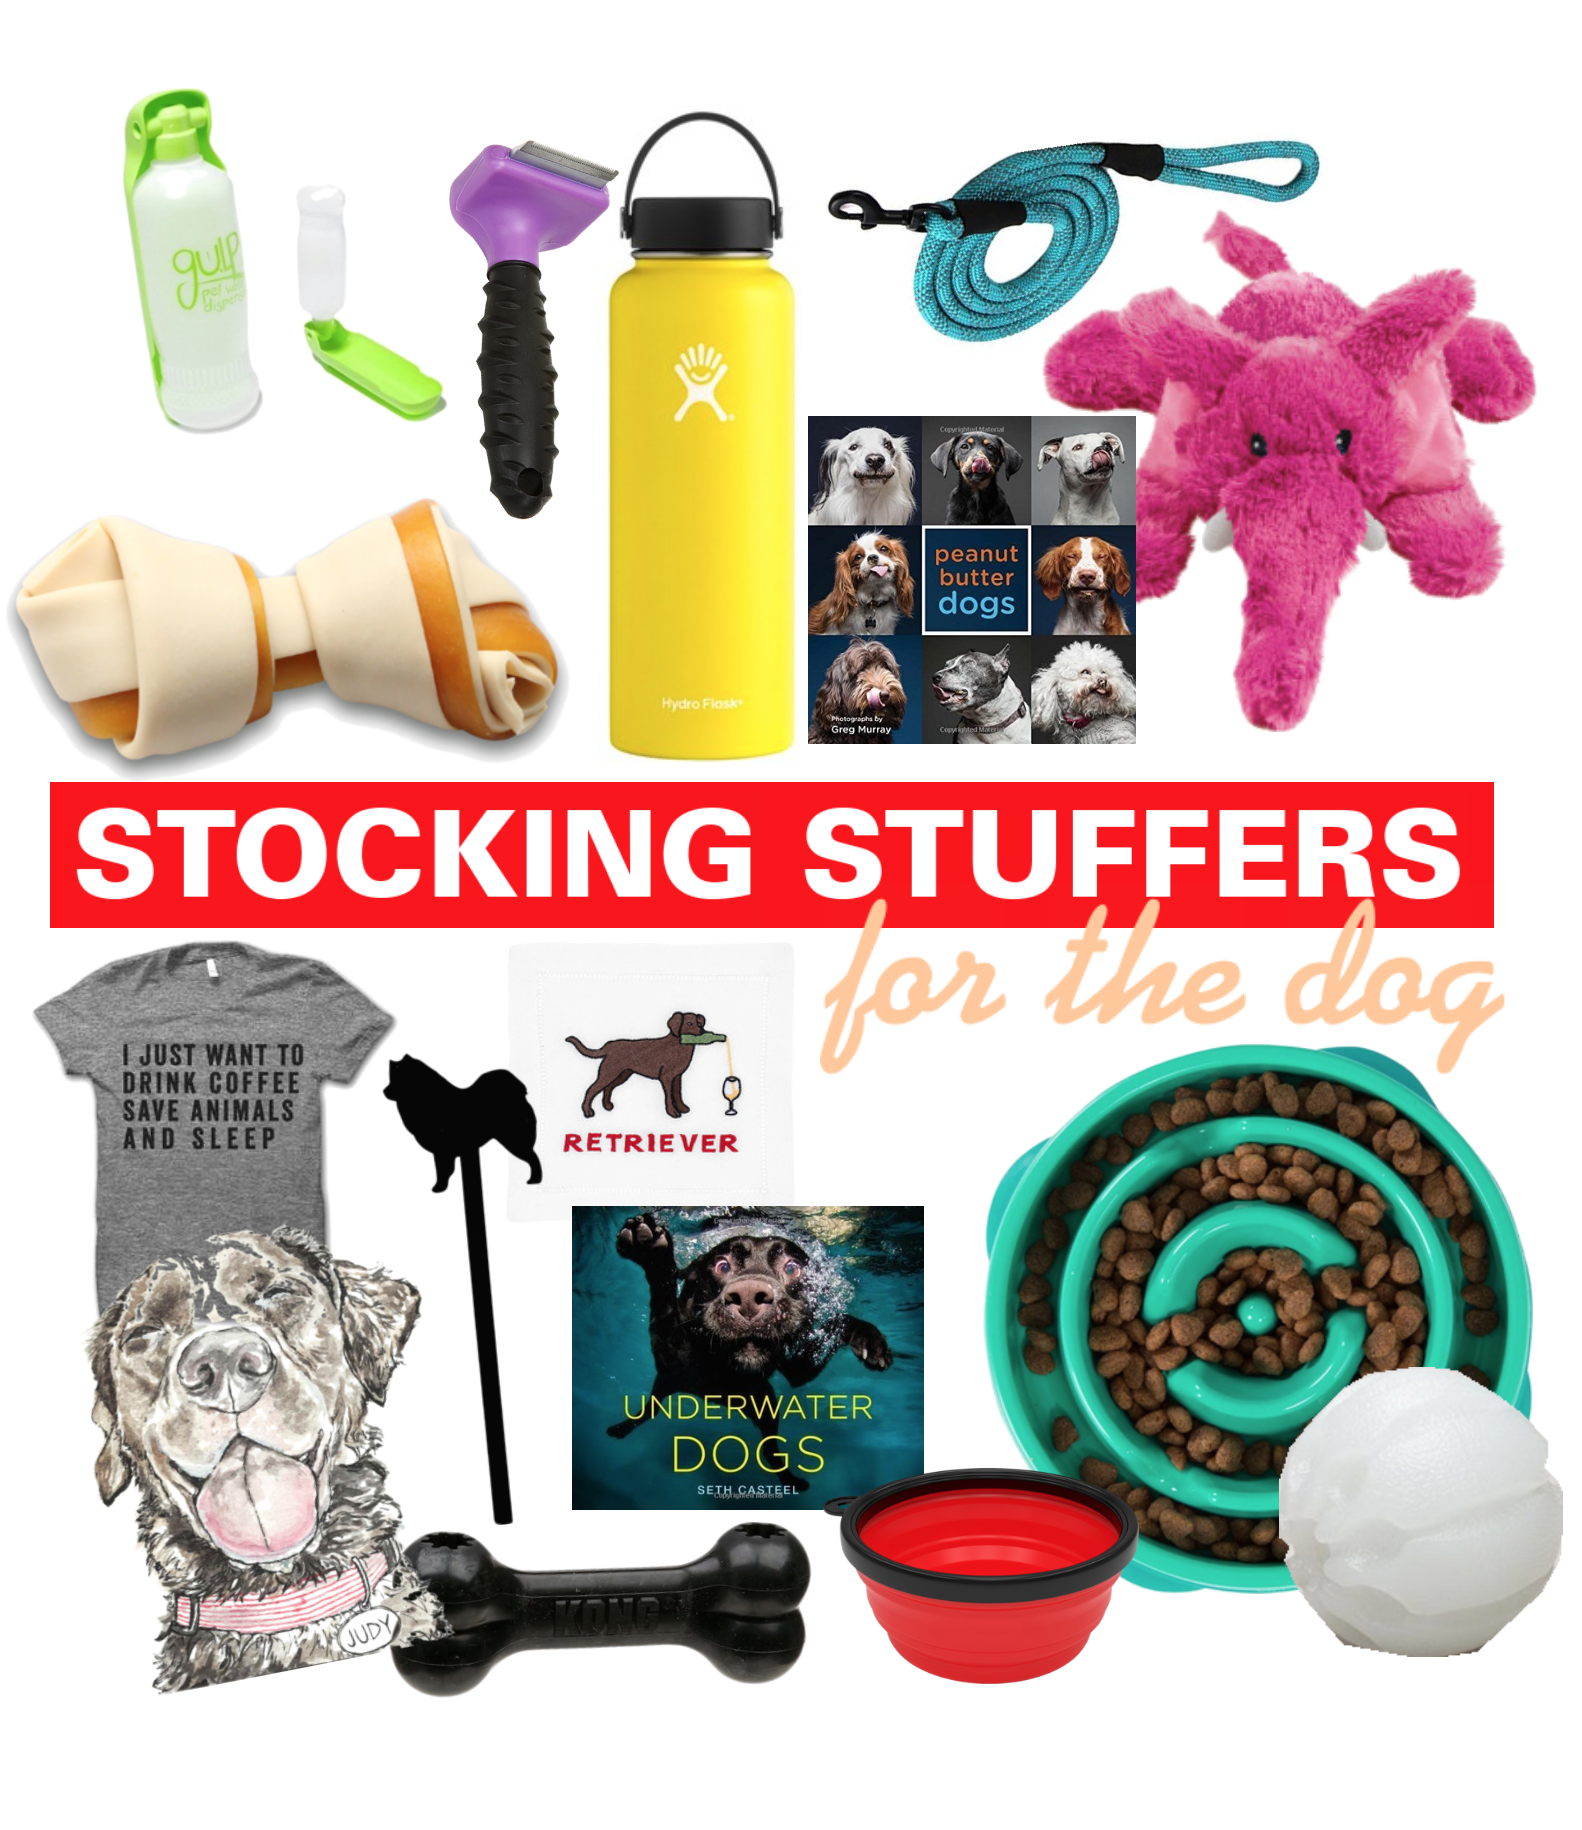 Stocking Stuffers For The Dog - 2017 Christmas Stocking Stuffers - Stocking Stuffer Ideas - Holiday Gift Ideas For Dog Lovers - Gifts For Animal Lovers - Communikait by Kait Hanson